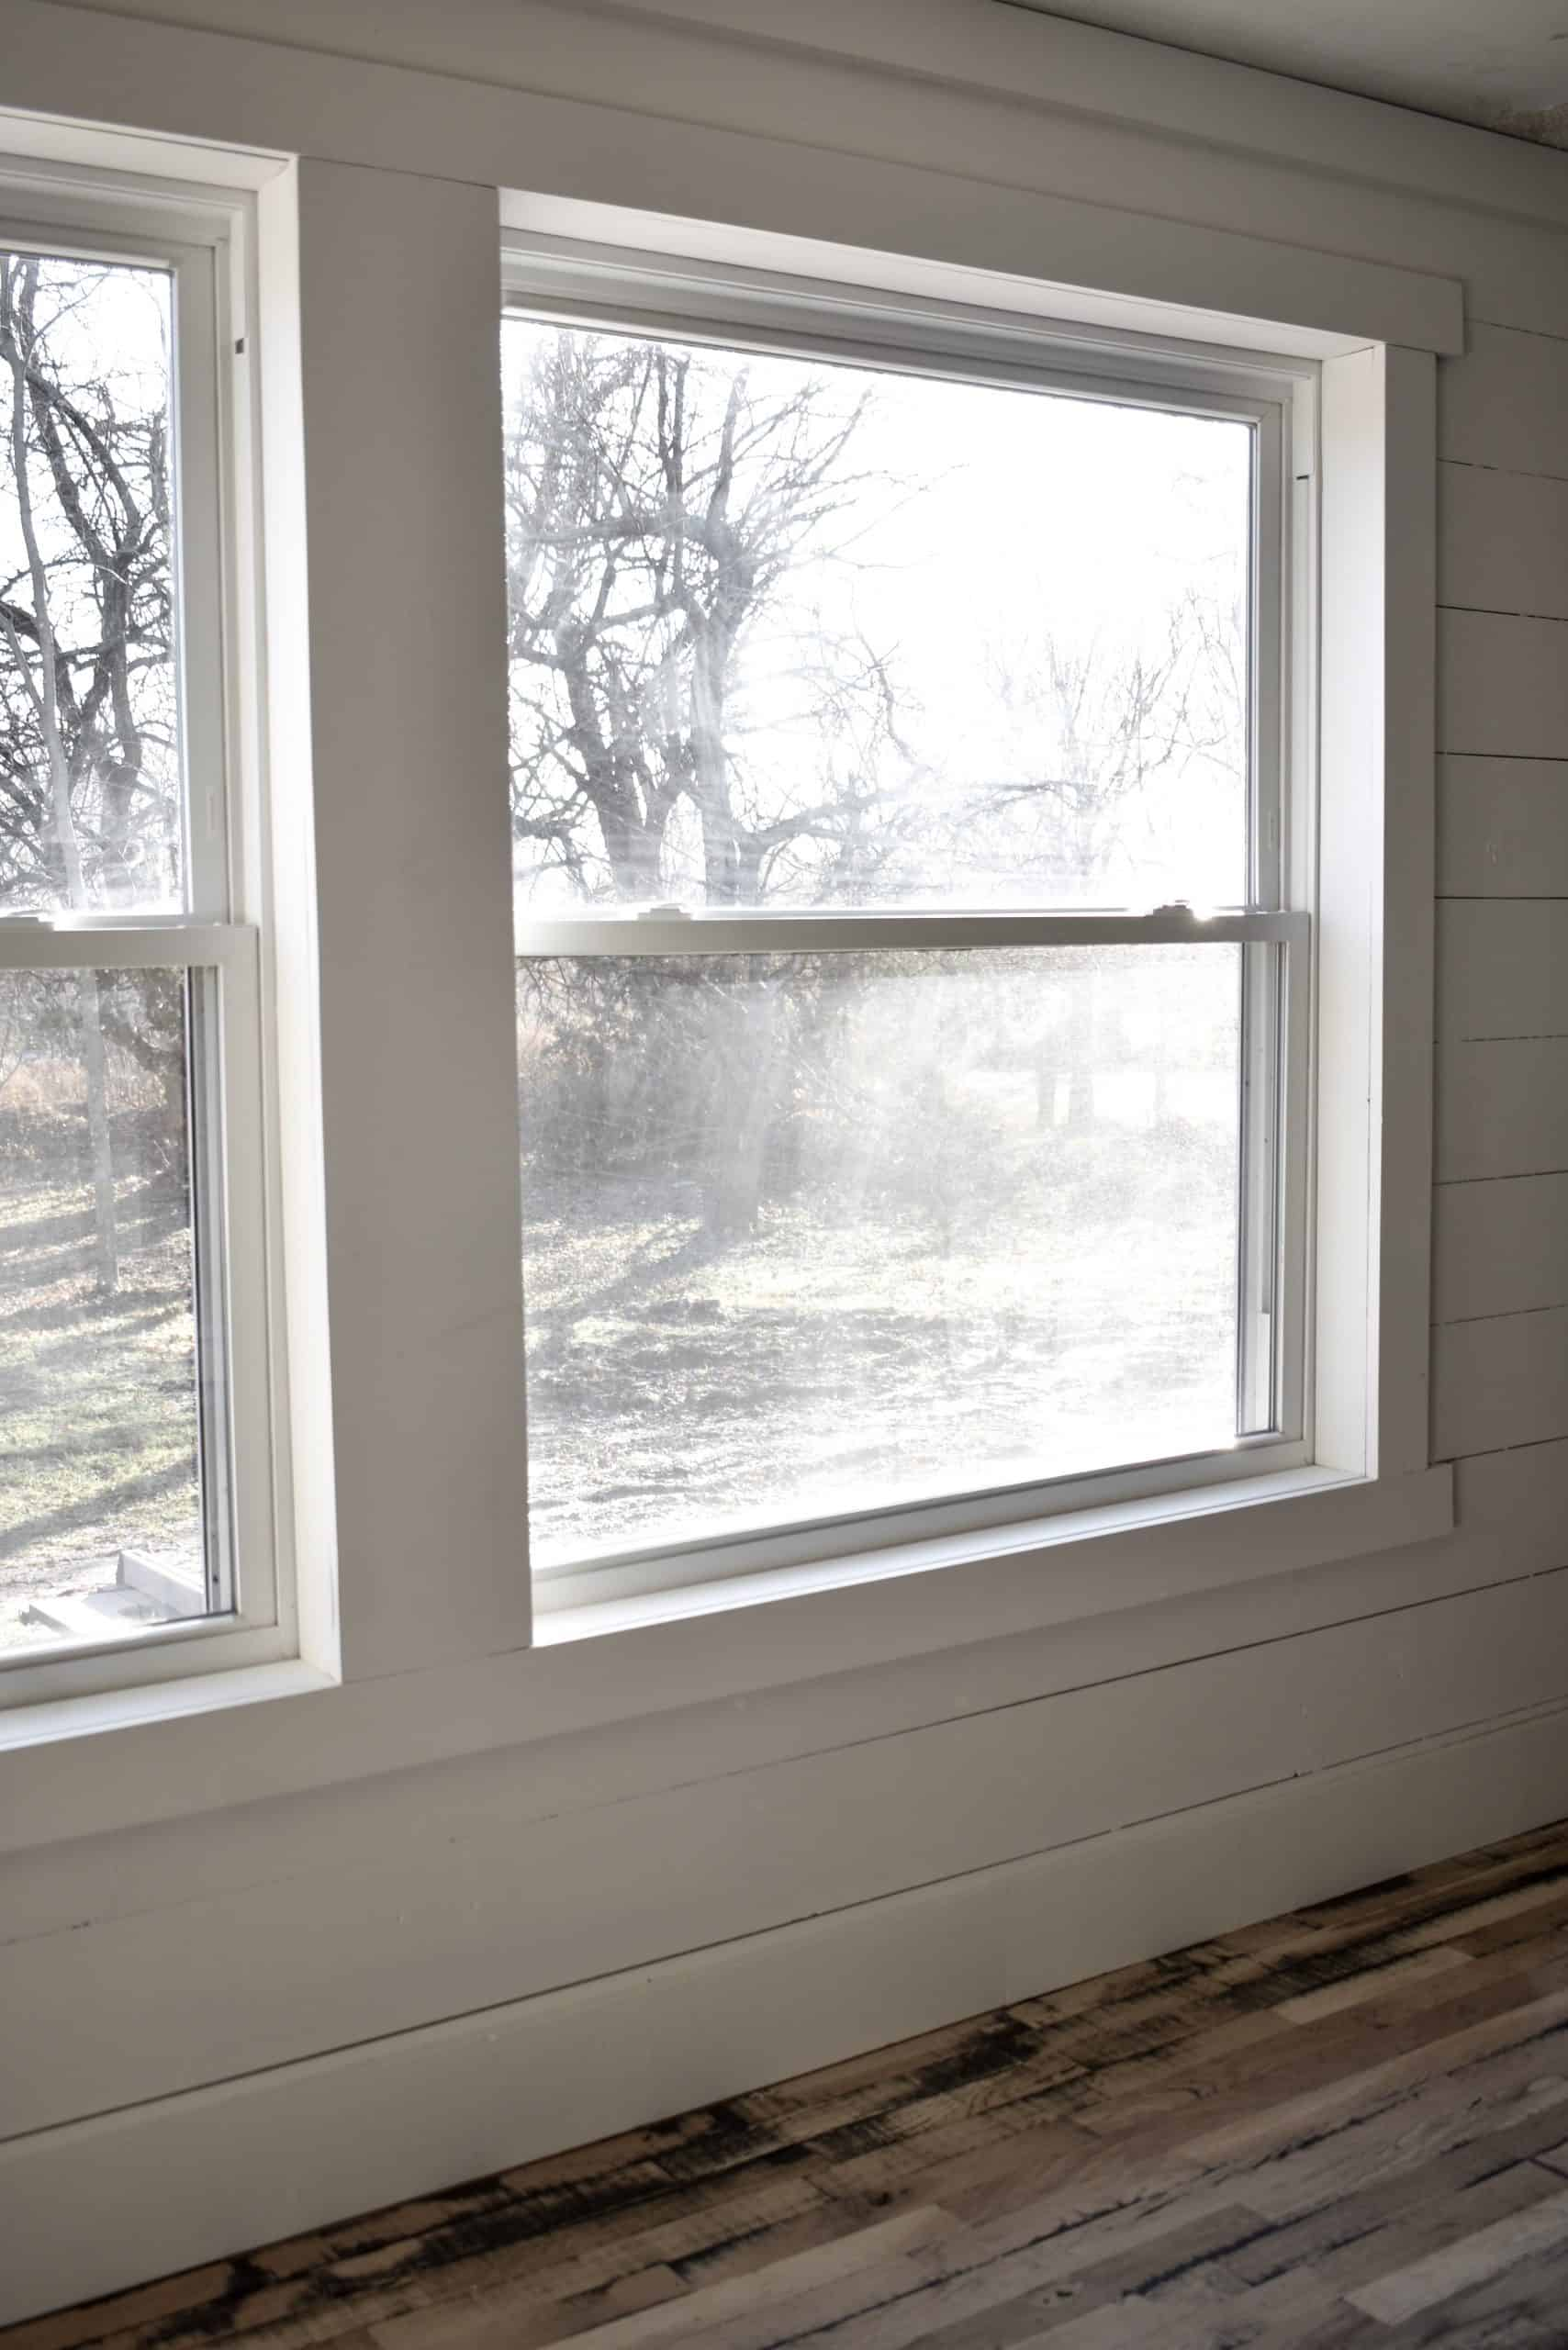 Before and After Mobile Home Simple Farmhouse Style Window Trim and Molding